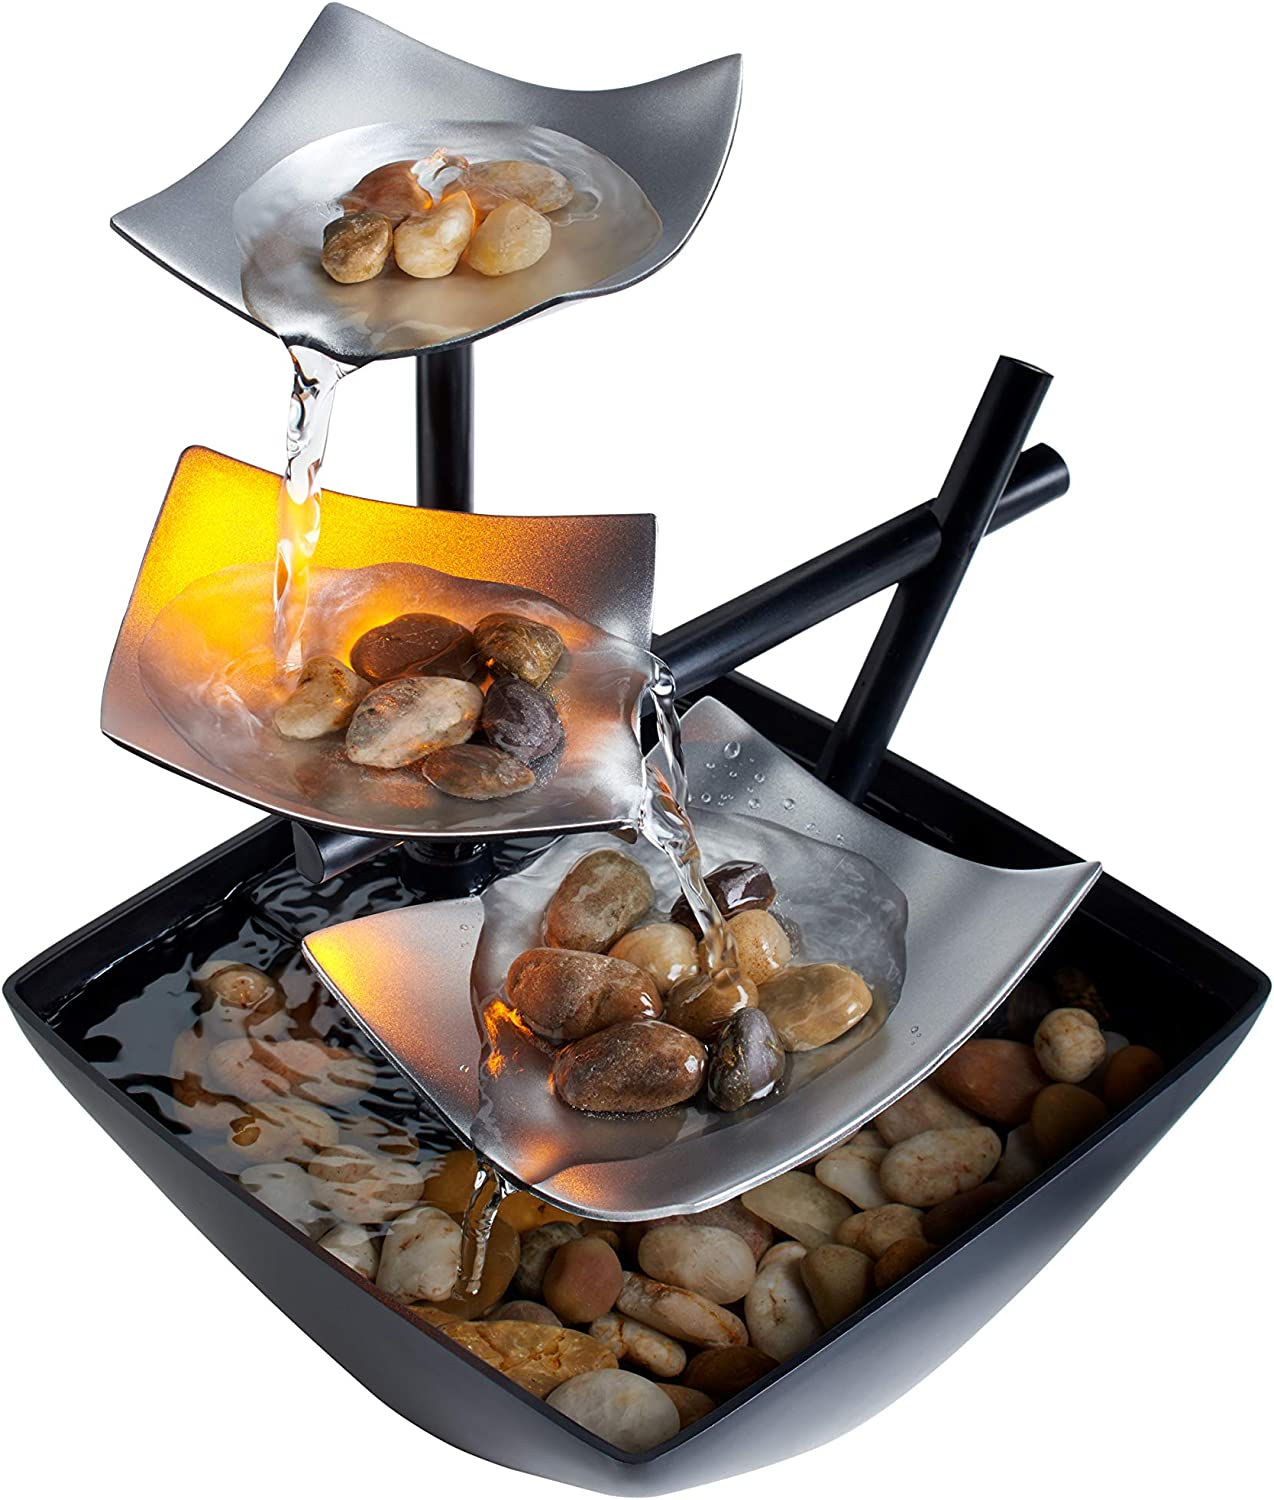 HoMedics Silver Springs Indoor Relaxation Fountain, Illuminated Waterfall, Automatic Pump: Health & Personal Care